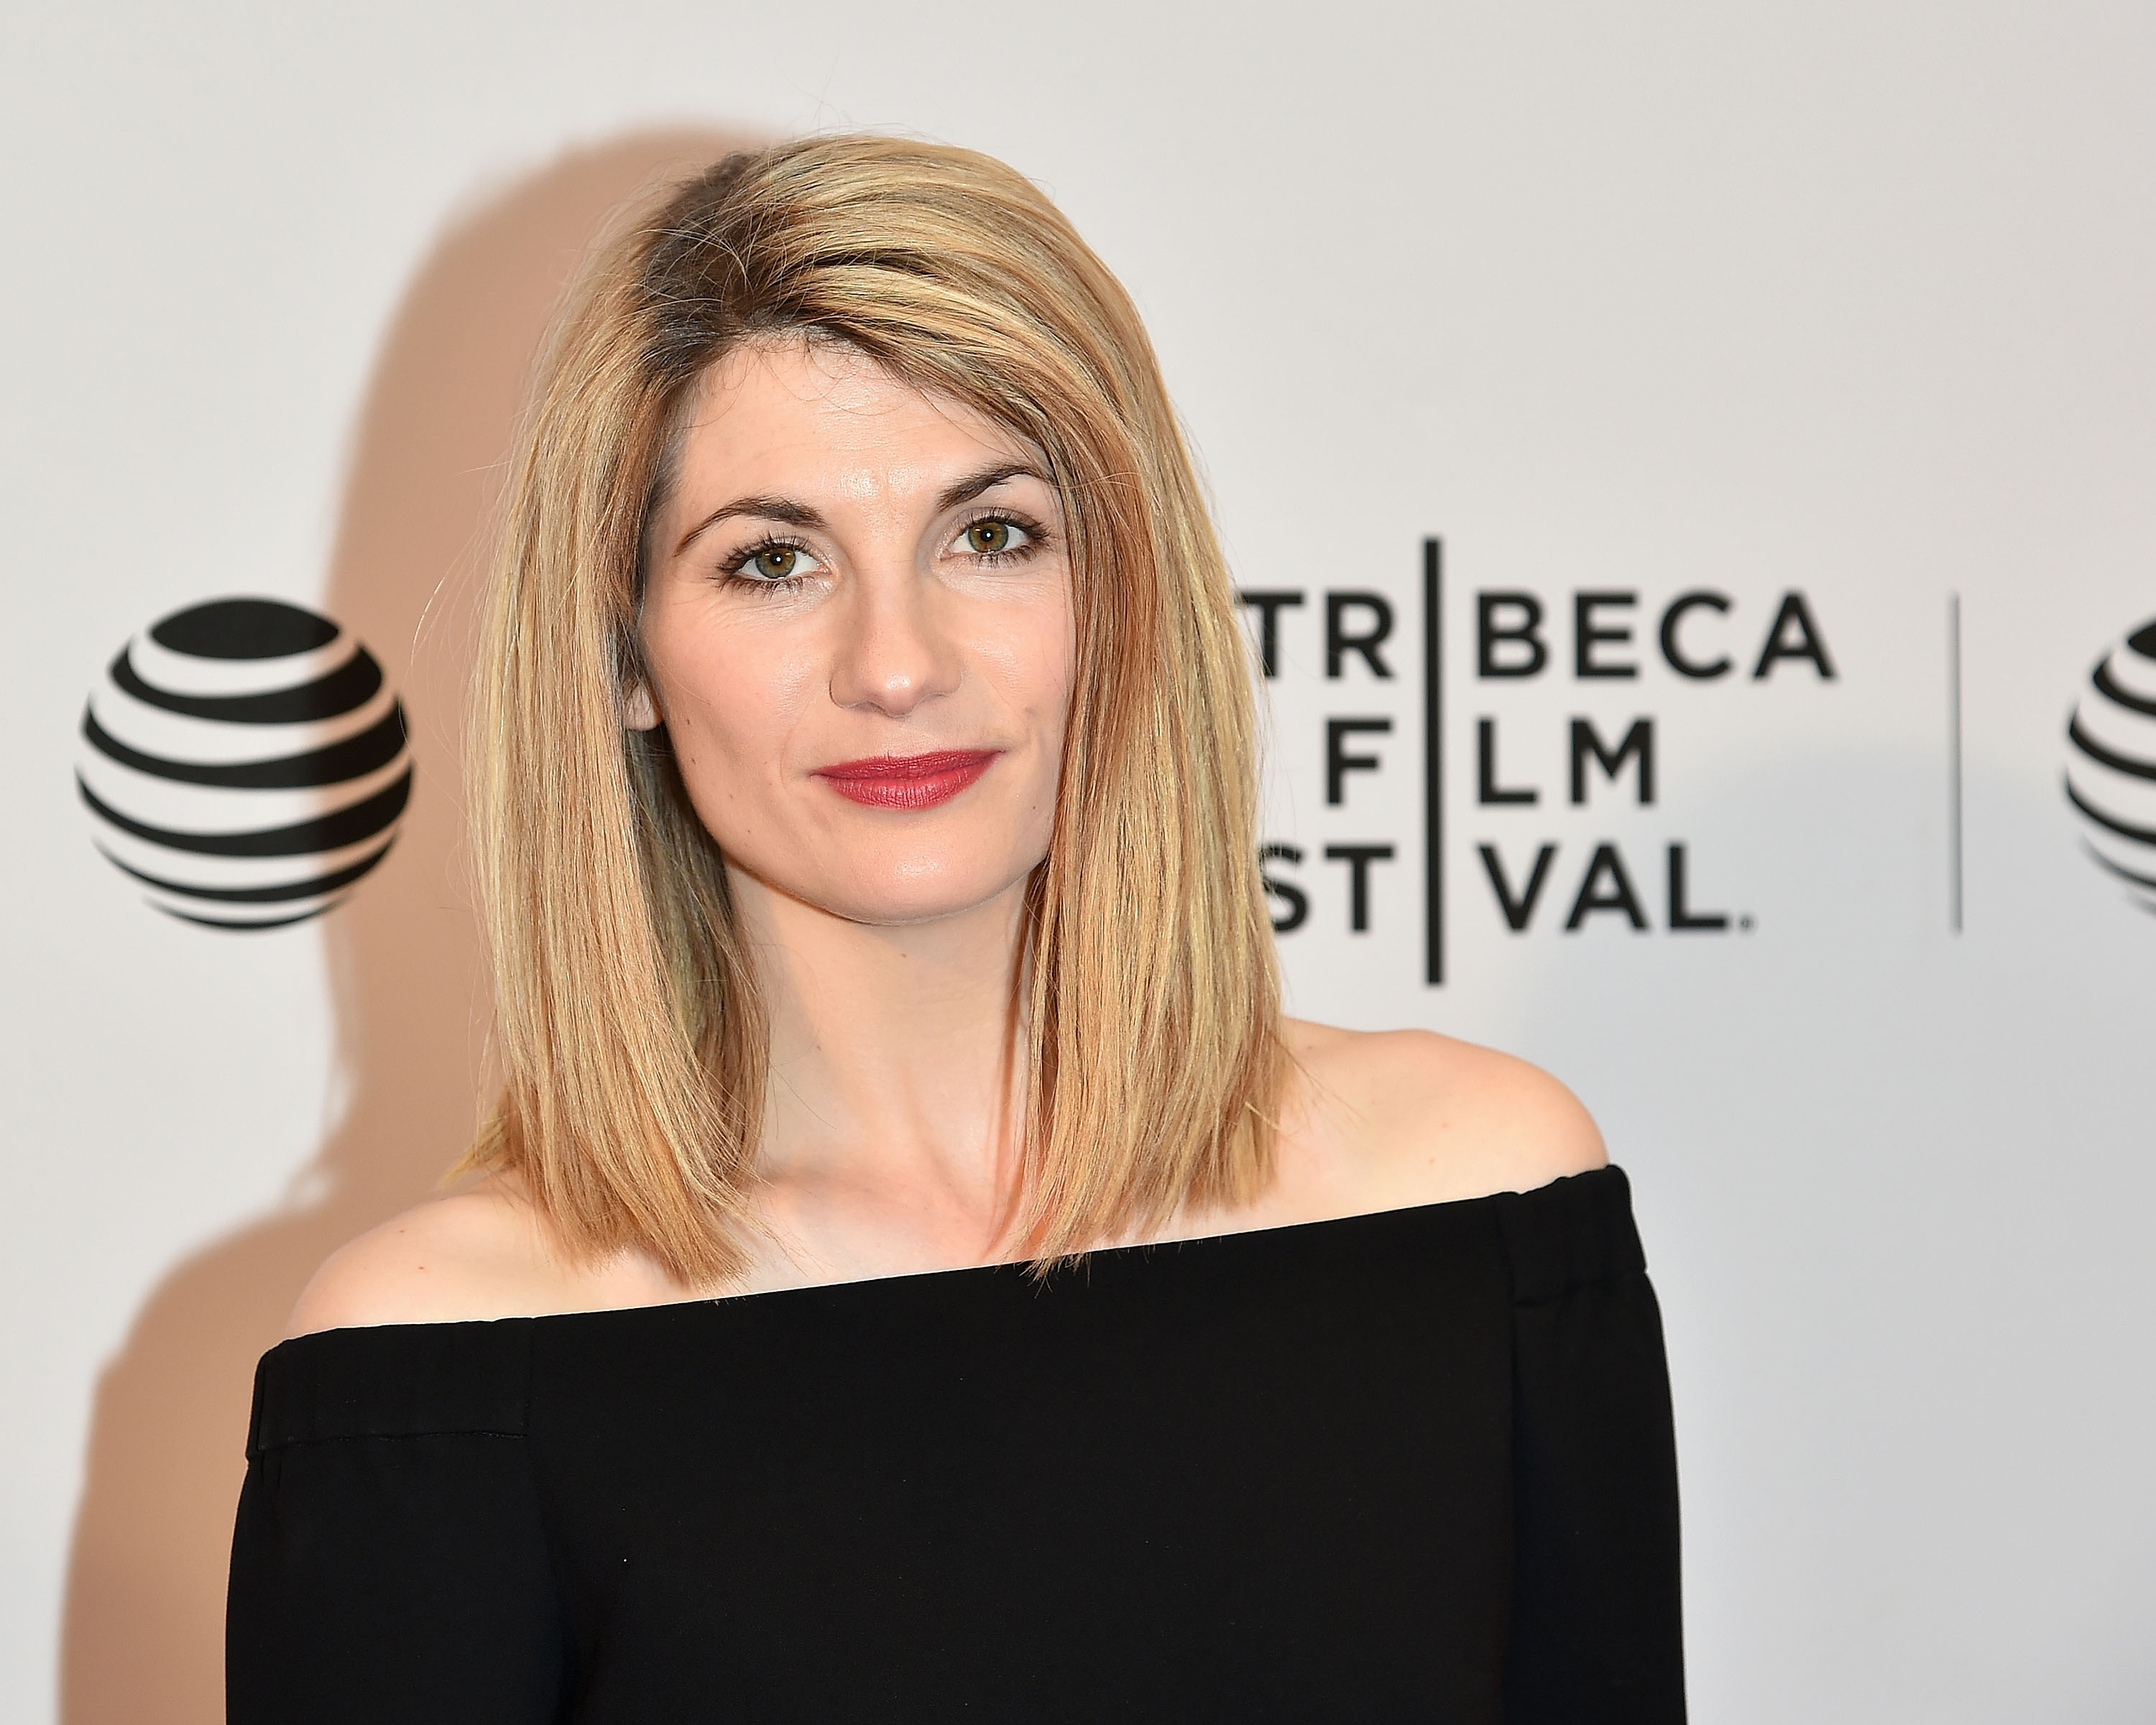 Actress Jodie Whittaker attends the  Adult Life Skills  Premiere during the 2016 Tribeca Film Festival at Chelsea Bow Tie Cinemas on April 17, 2016 in New York City.  (Photo by Ben Gabbe/Getty Images for Tribeca Film Festival)